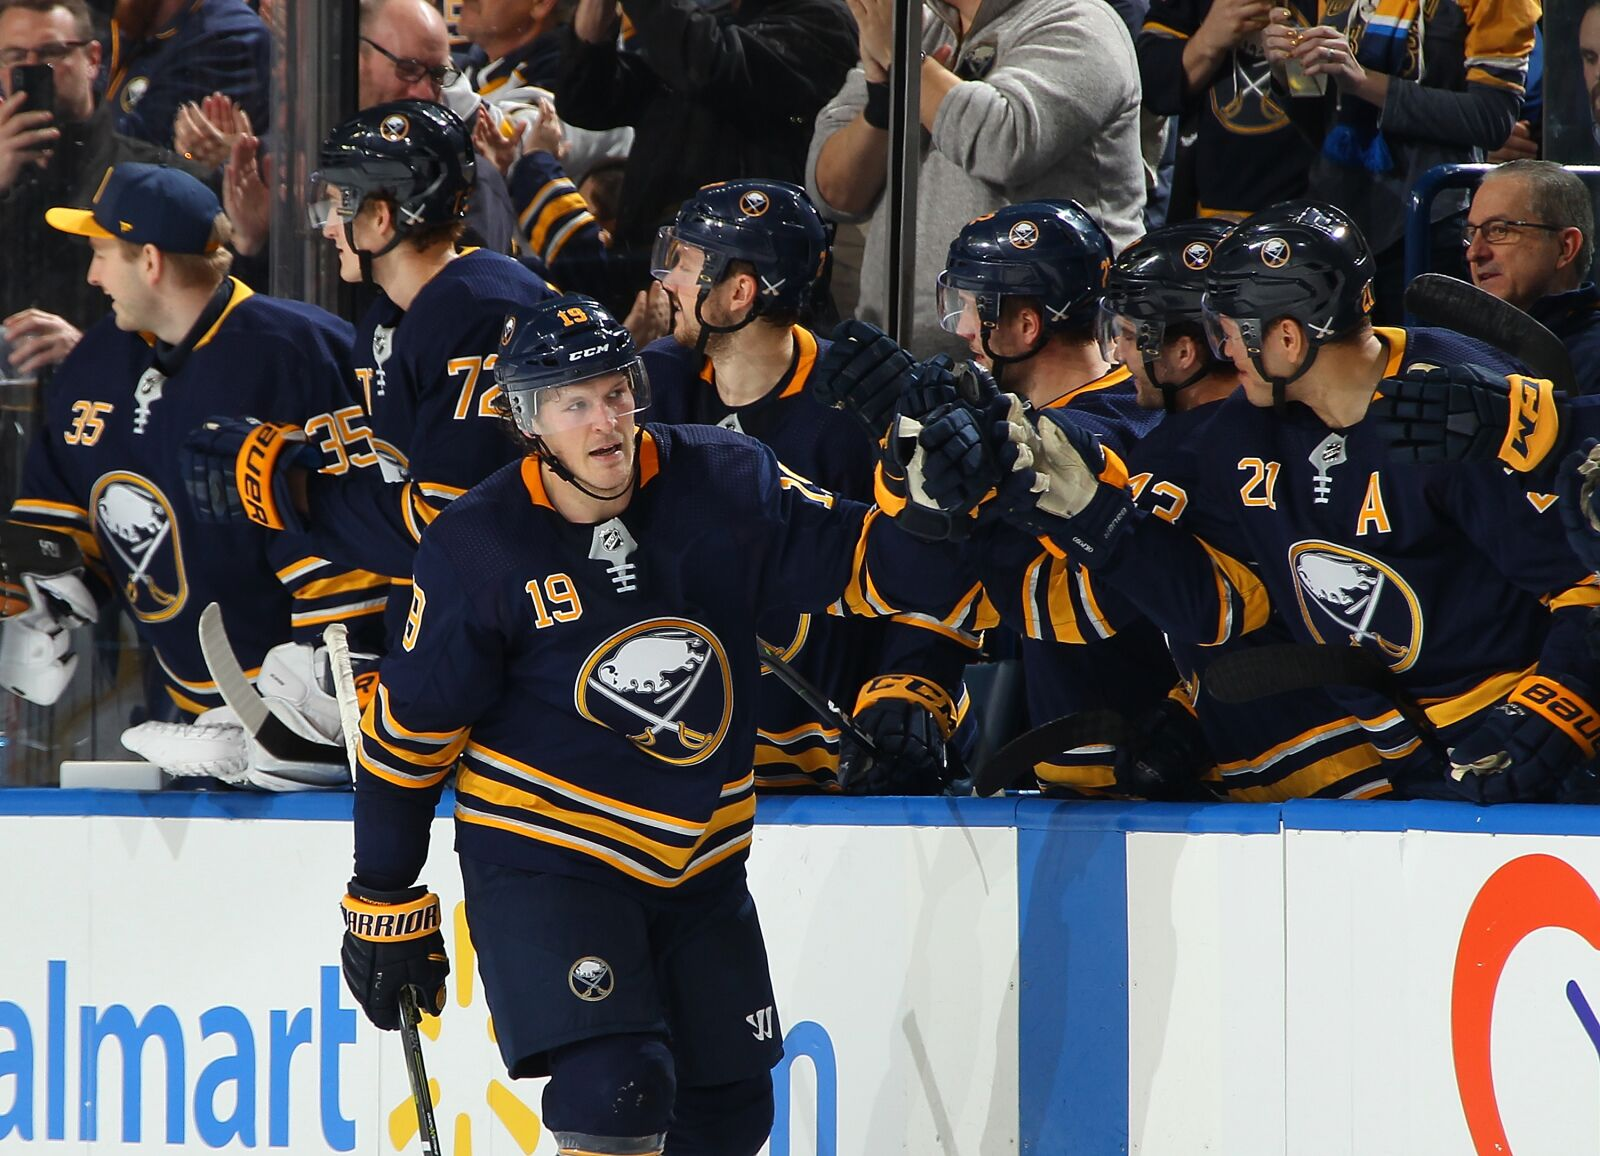 Buffalo Sabres have officially hit rock bottom after blowout loss to Oilers